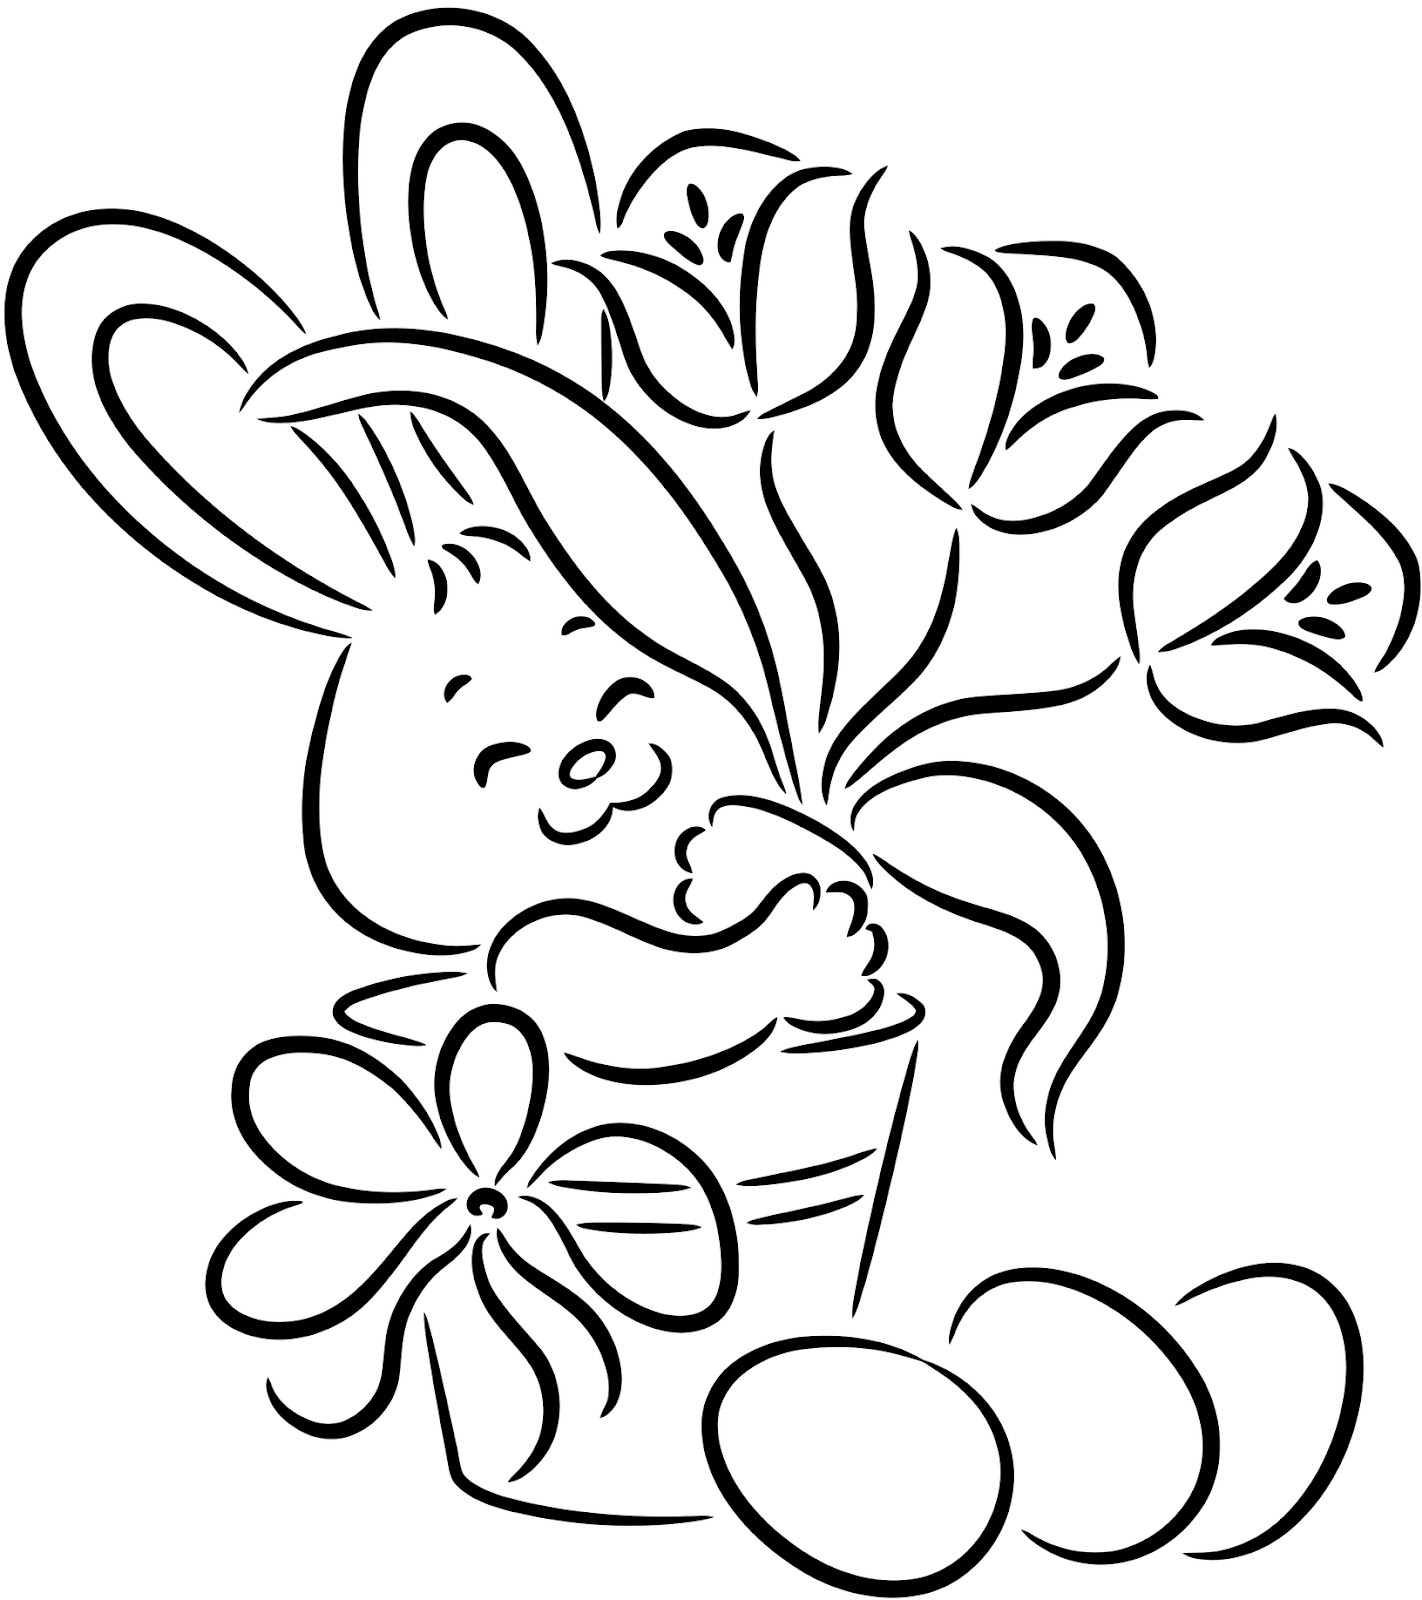 coloring pages of a bunny rabbit to download rabbit kids coloring pages of pages bunny a coloring